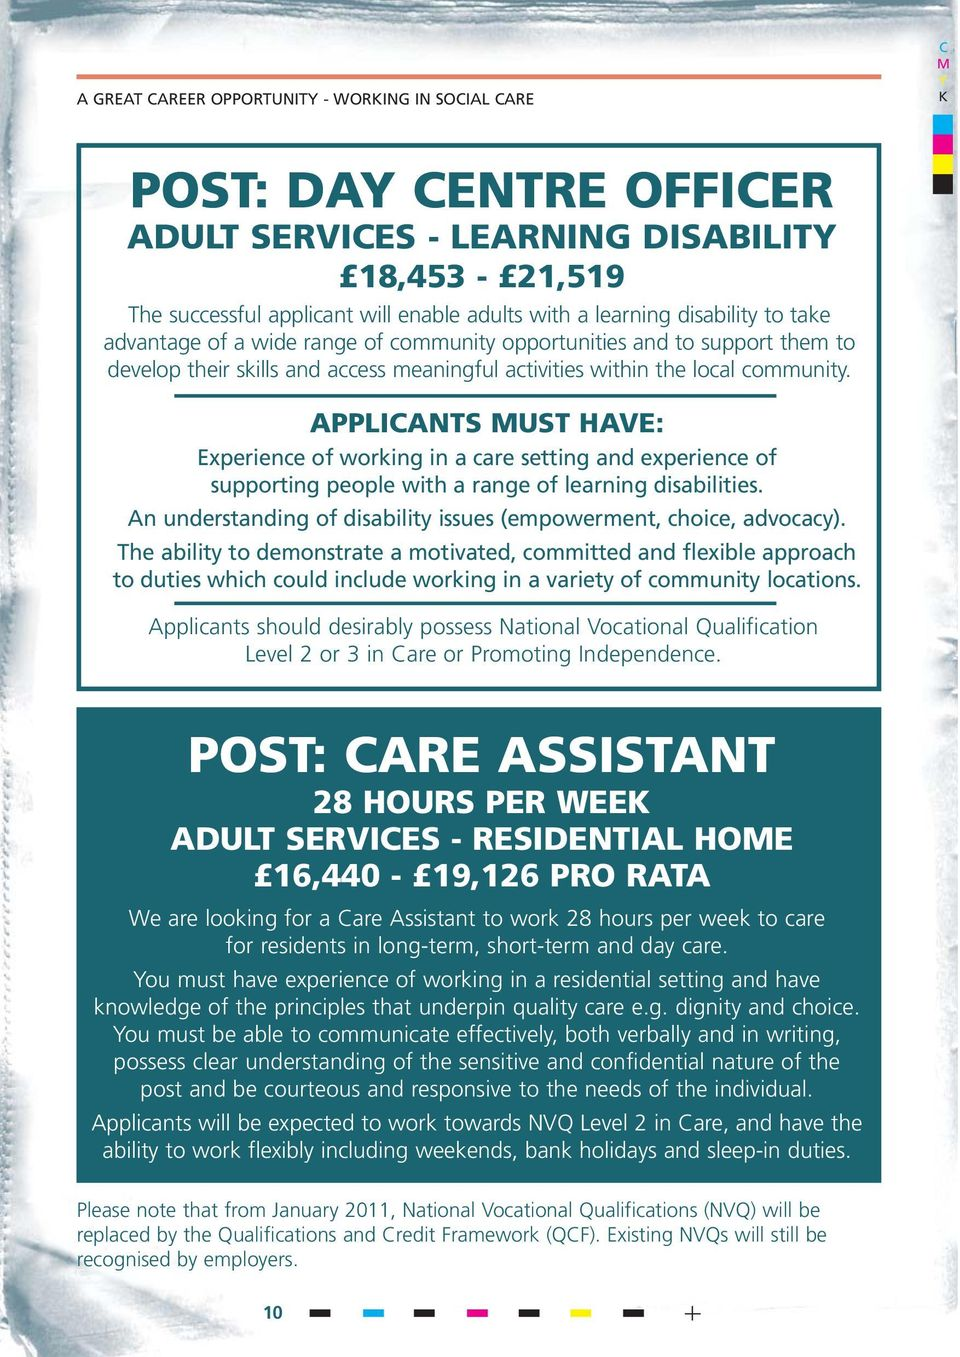 APPLICANTS MUST HAVE: Experience of working in a care setting and experience of supporting people with a range of learning disabilities.